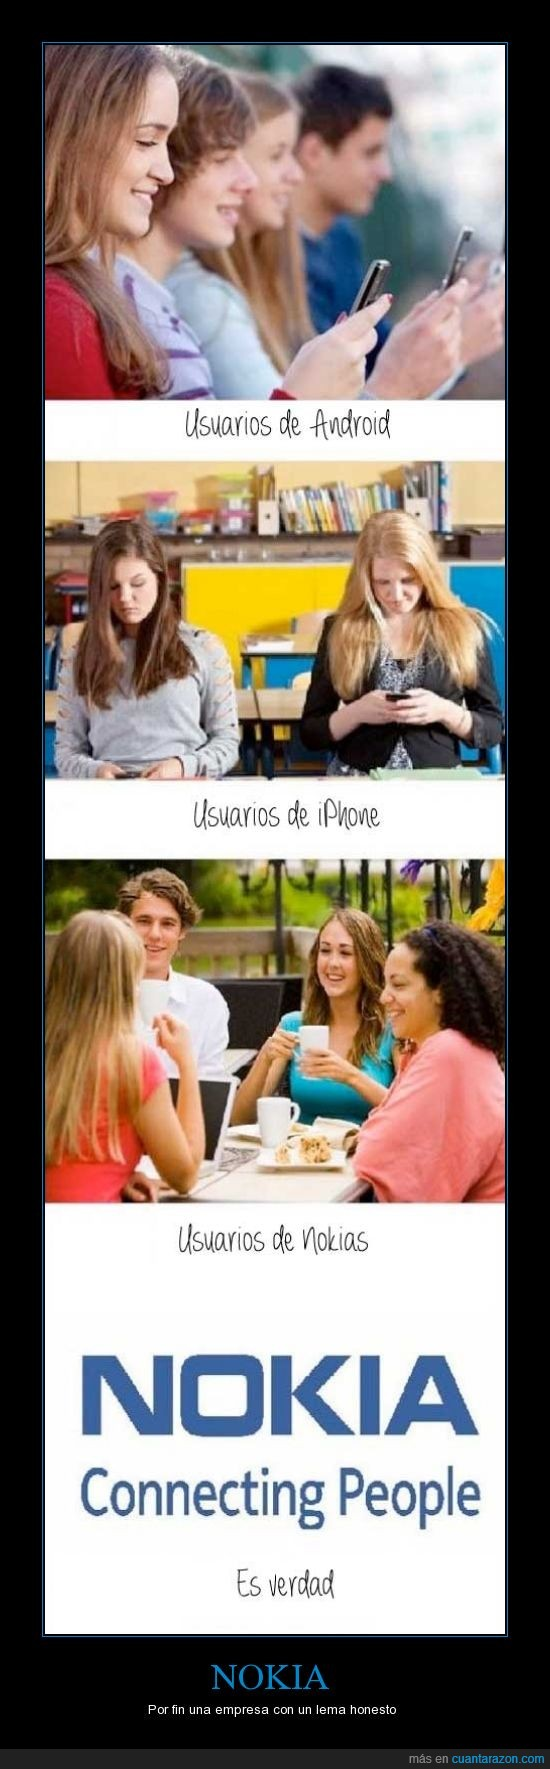 android,conexion,connecting people,gente,hablar,iphone,nokia